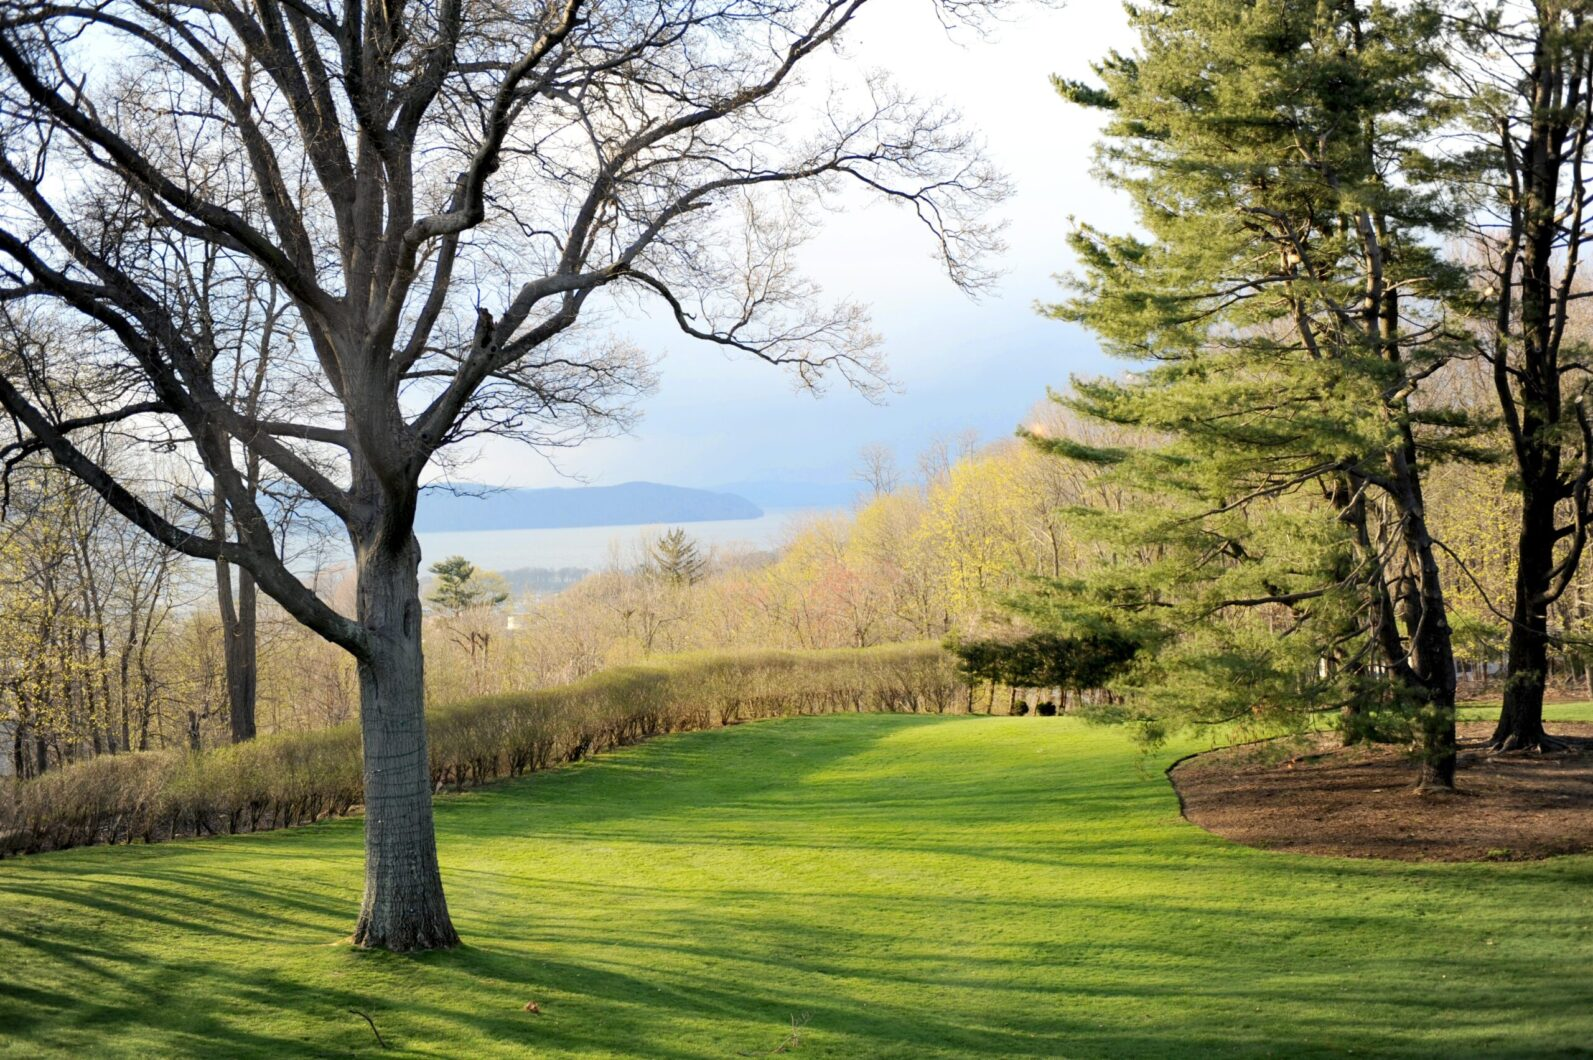 Outdoor space overlooking the Hudson Valley at Tappan Hill Mansion in Tarrytown, NY.